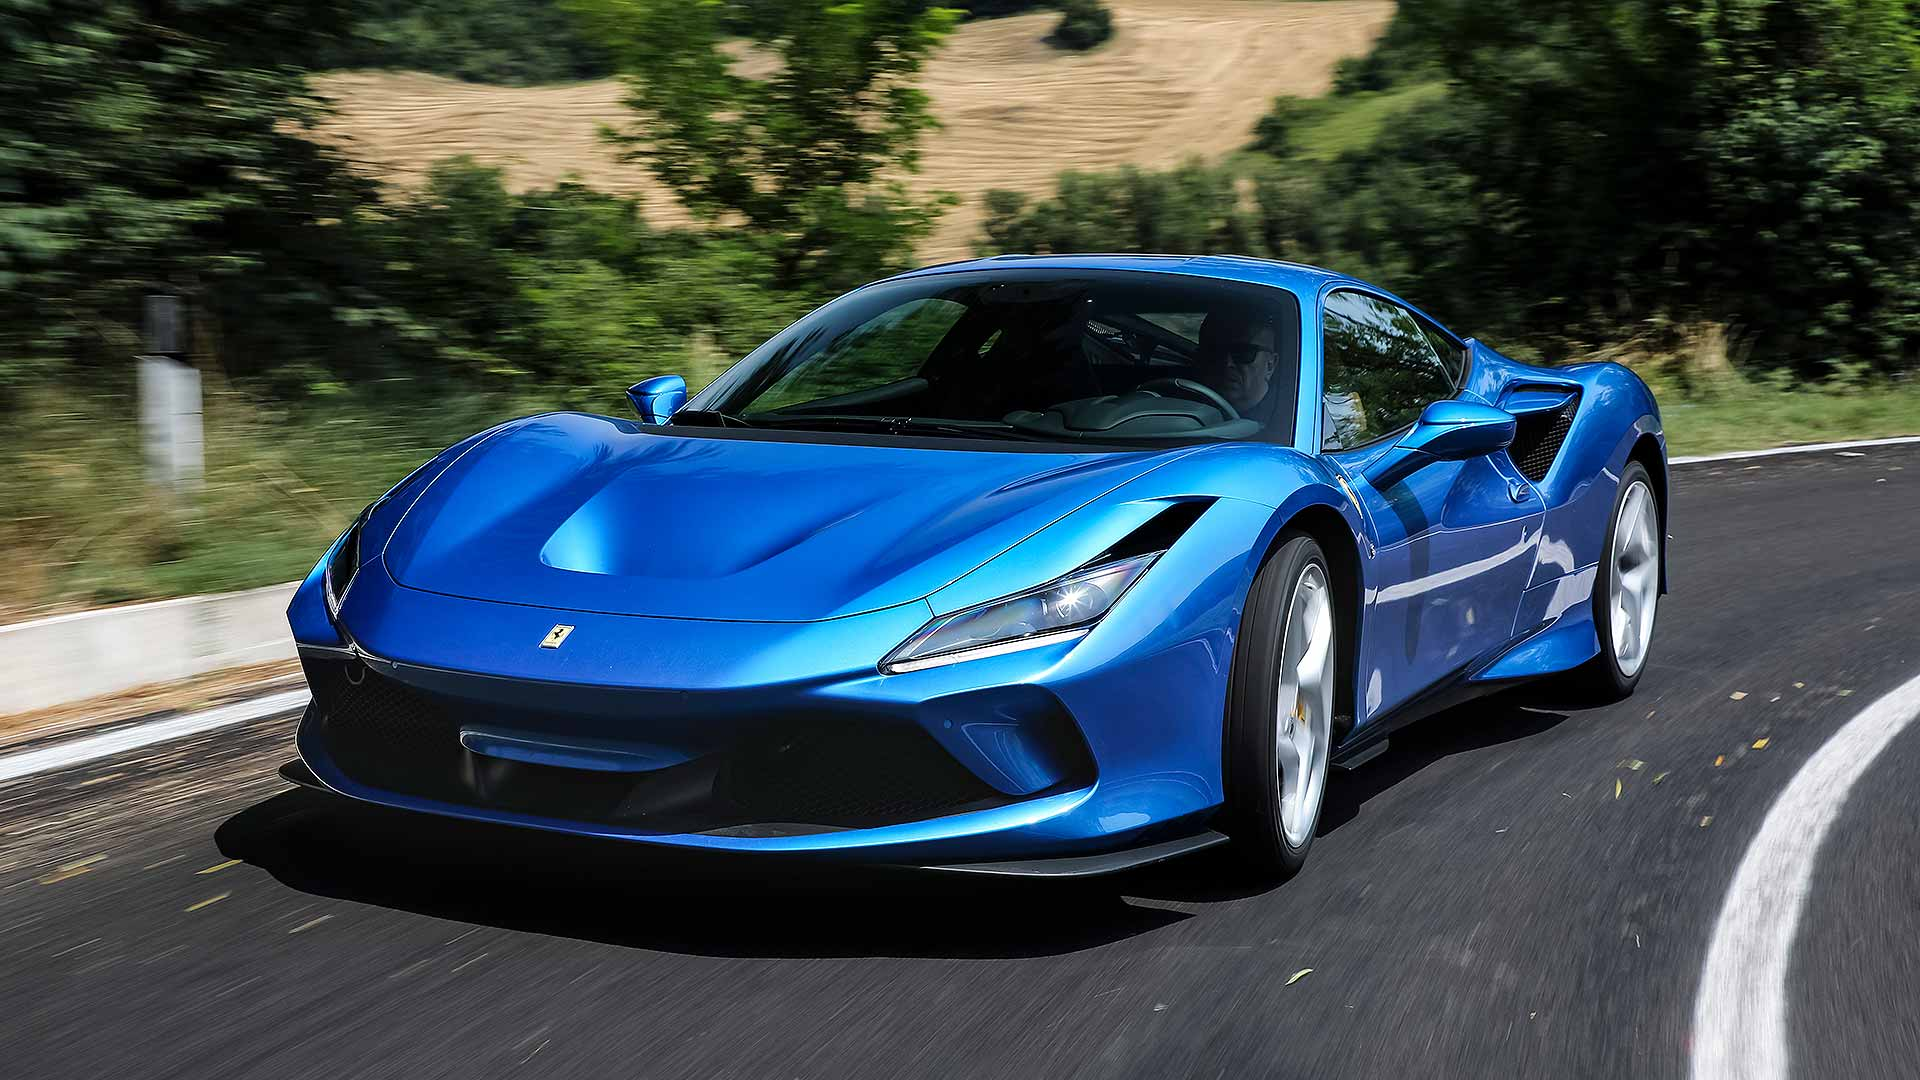 ferrari-f8-tributo-2020-is-the-best-sports-car-in-the-year-2020-what-do-you-think_0